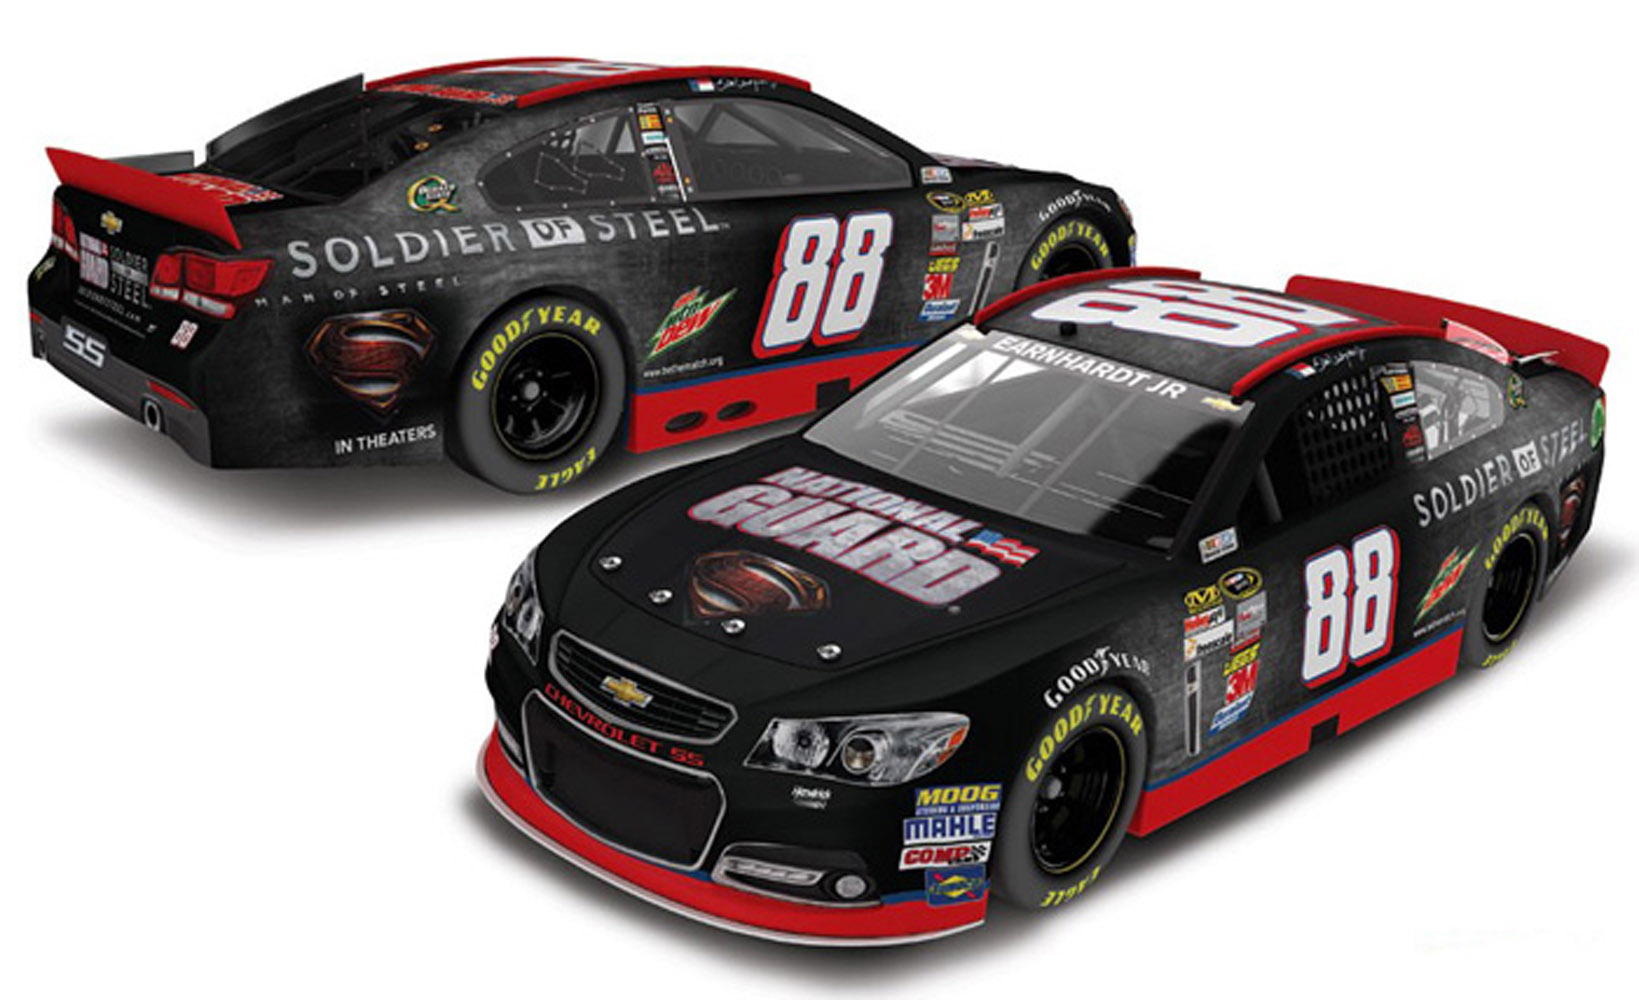 2013 Dale Earnhardt Jr #88 N / G Man of Steel 1:24 Nascar Diecast Car